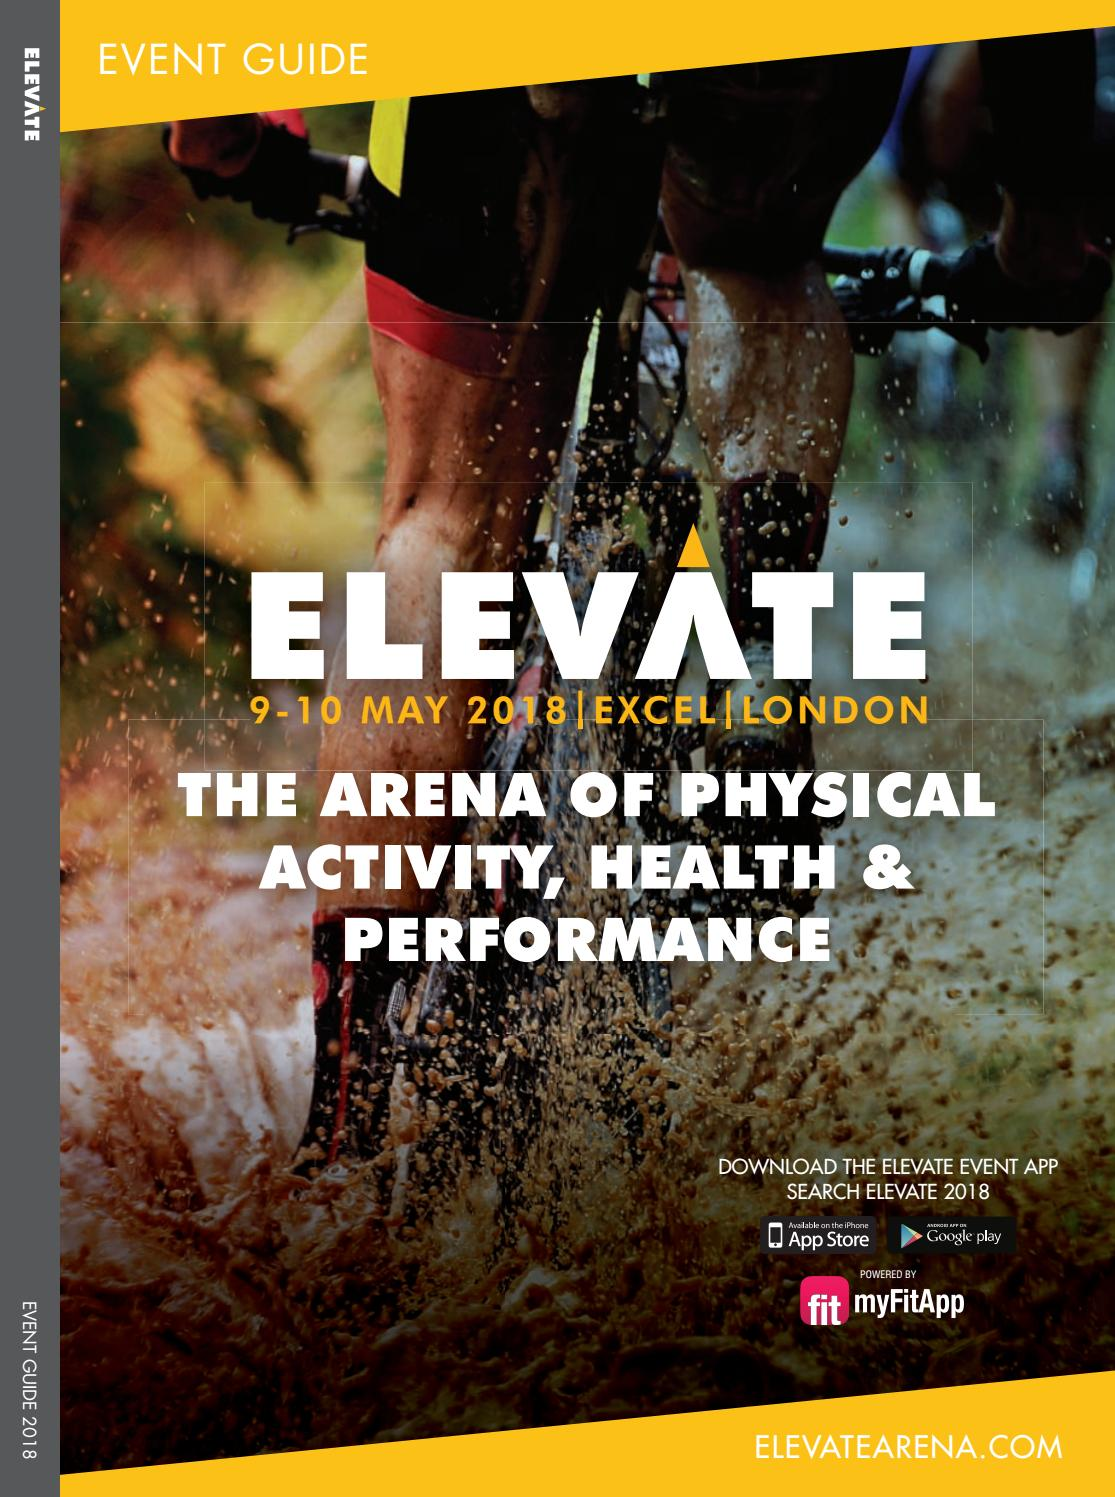 Elevate 2018 Event Guide by Quartz Business Media - issuu